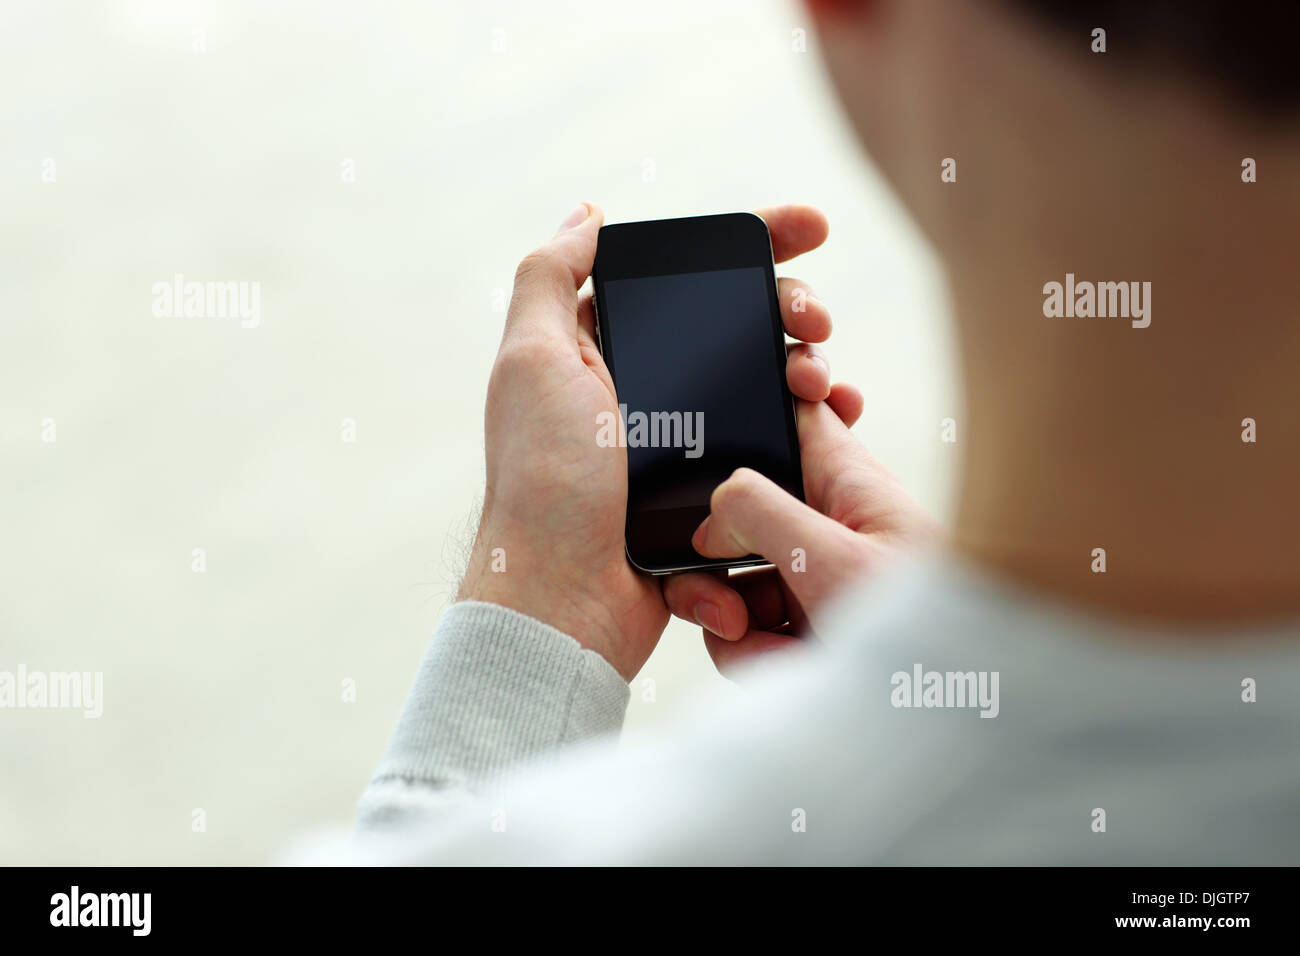 Closeup image of a man holding smartphone and looking at display isolated on a white background - Stock Image